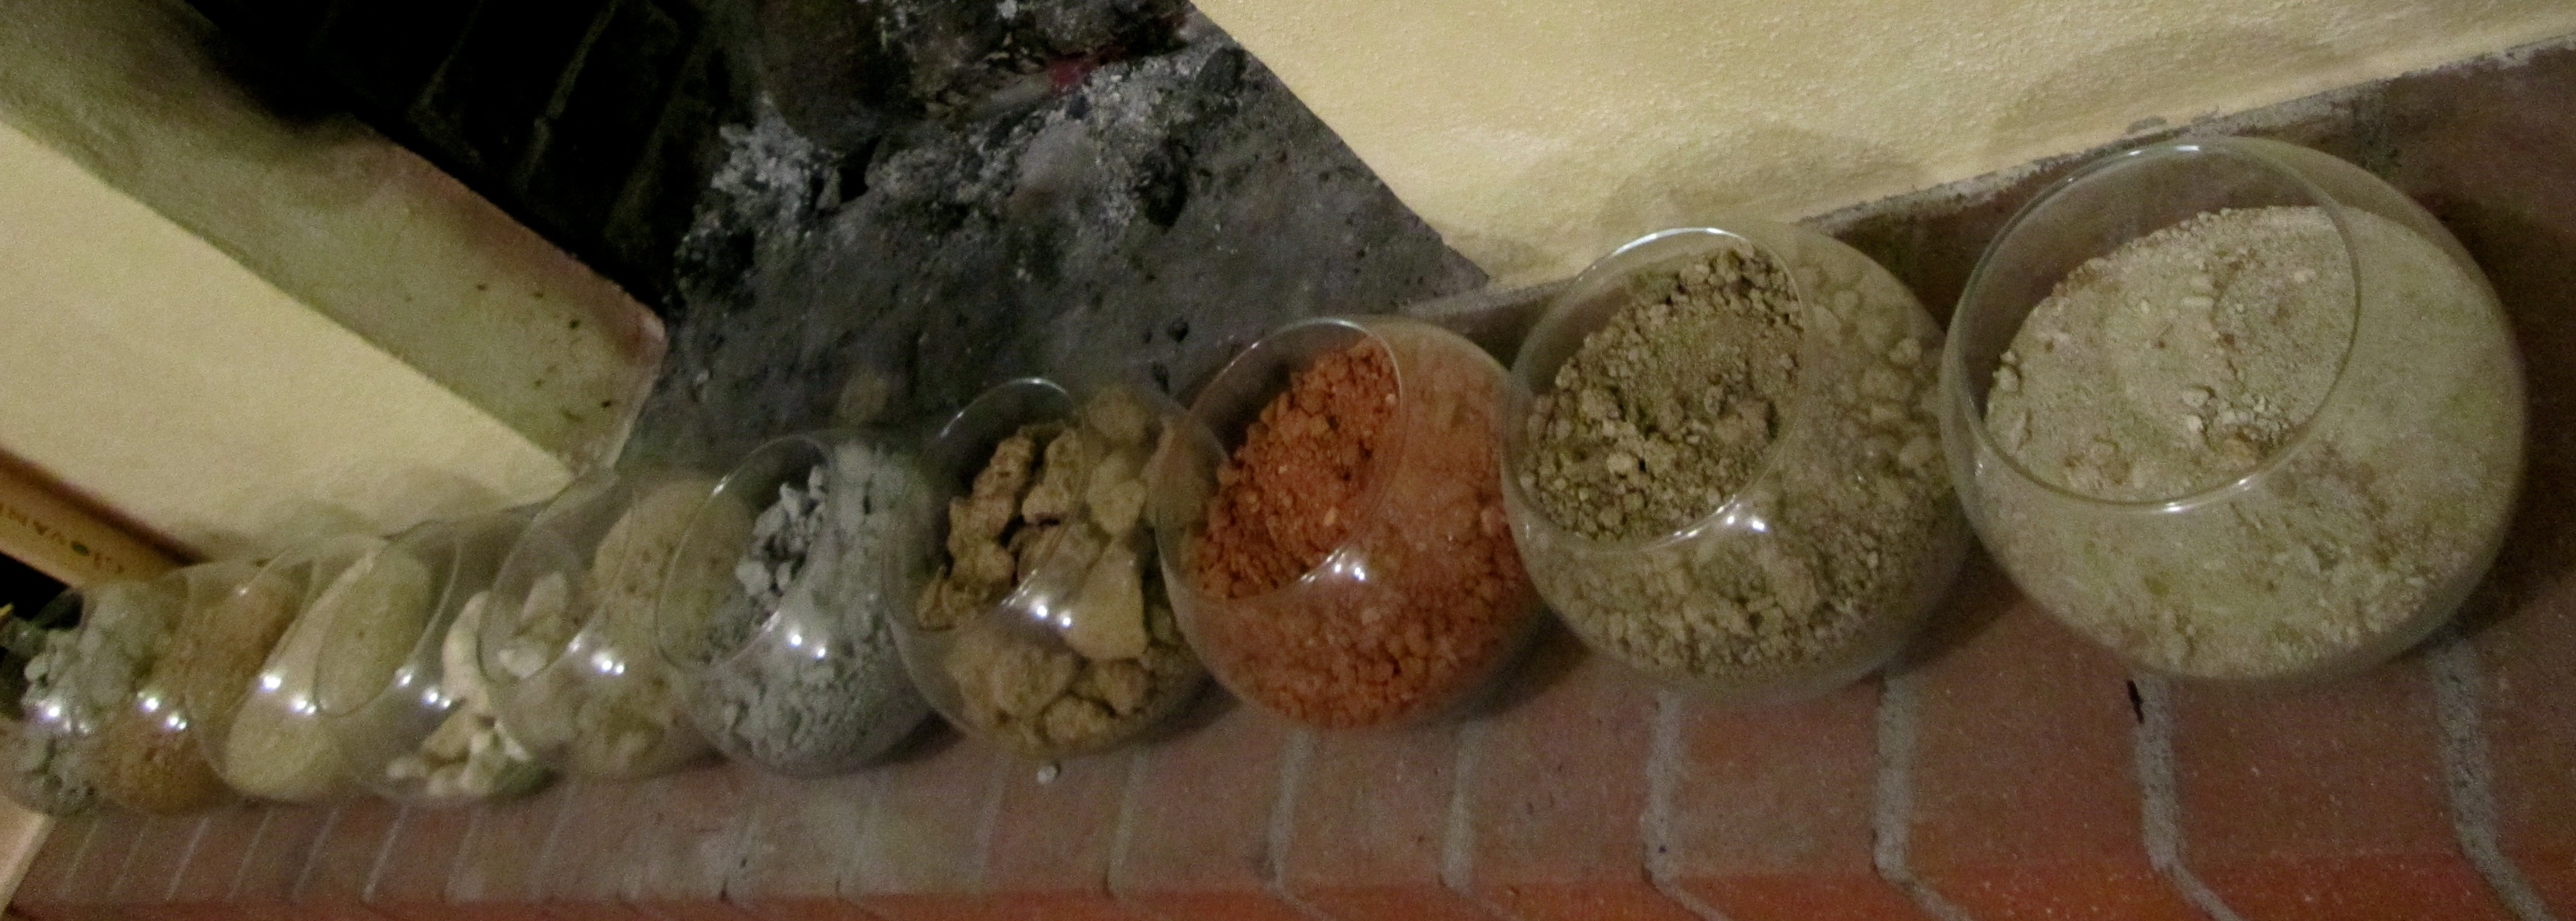 Different soil types found in the vineyards of giovanni for What is soil made out of